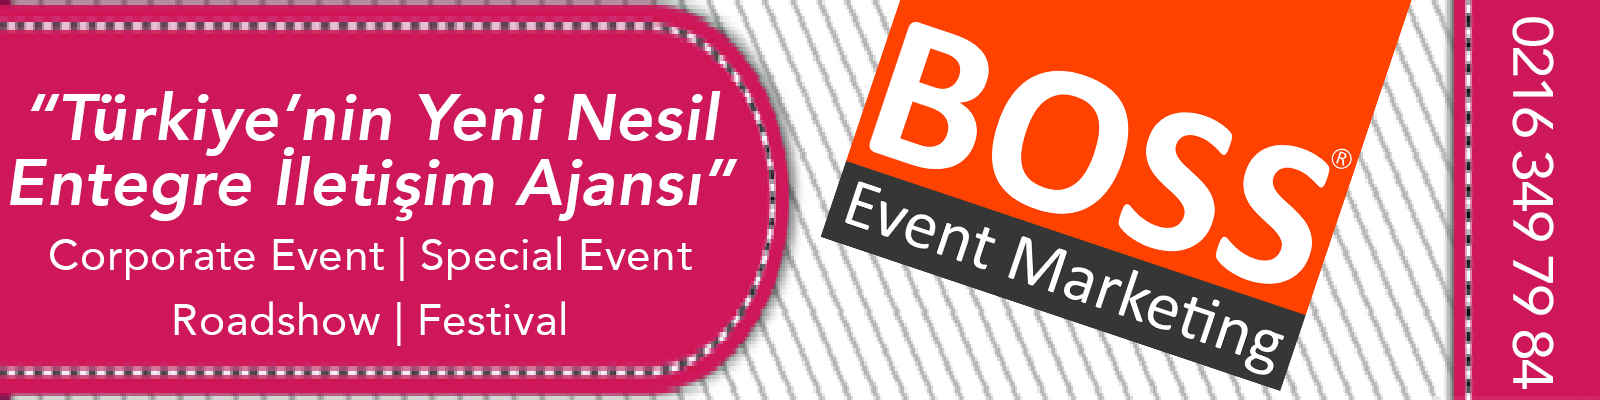 Boss Event Marketing banner fotograf